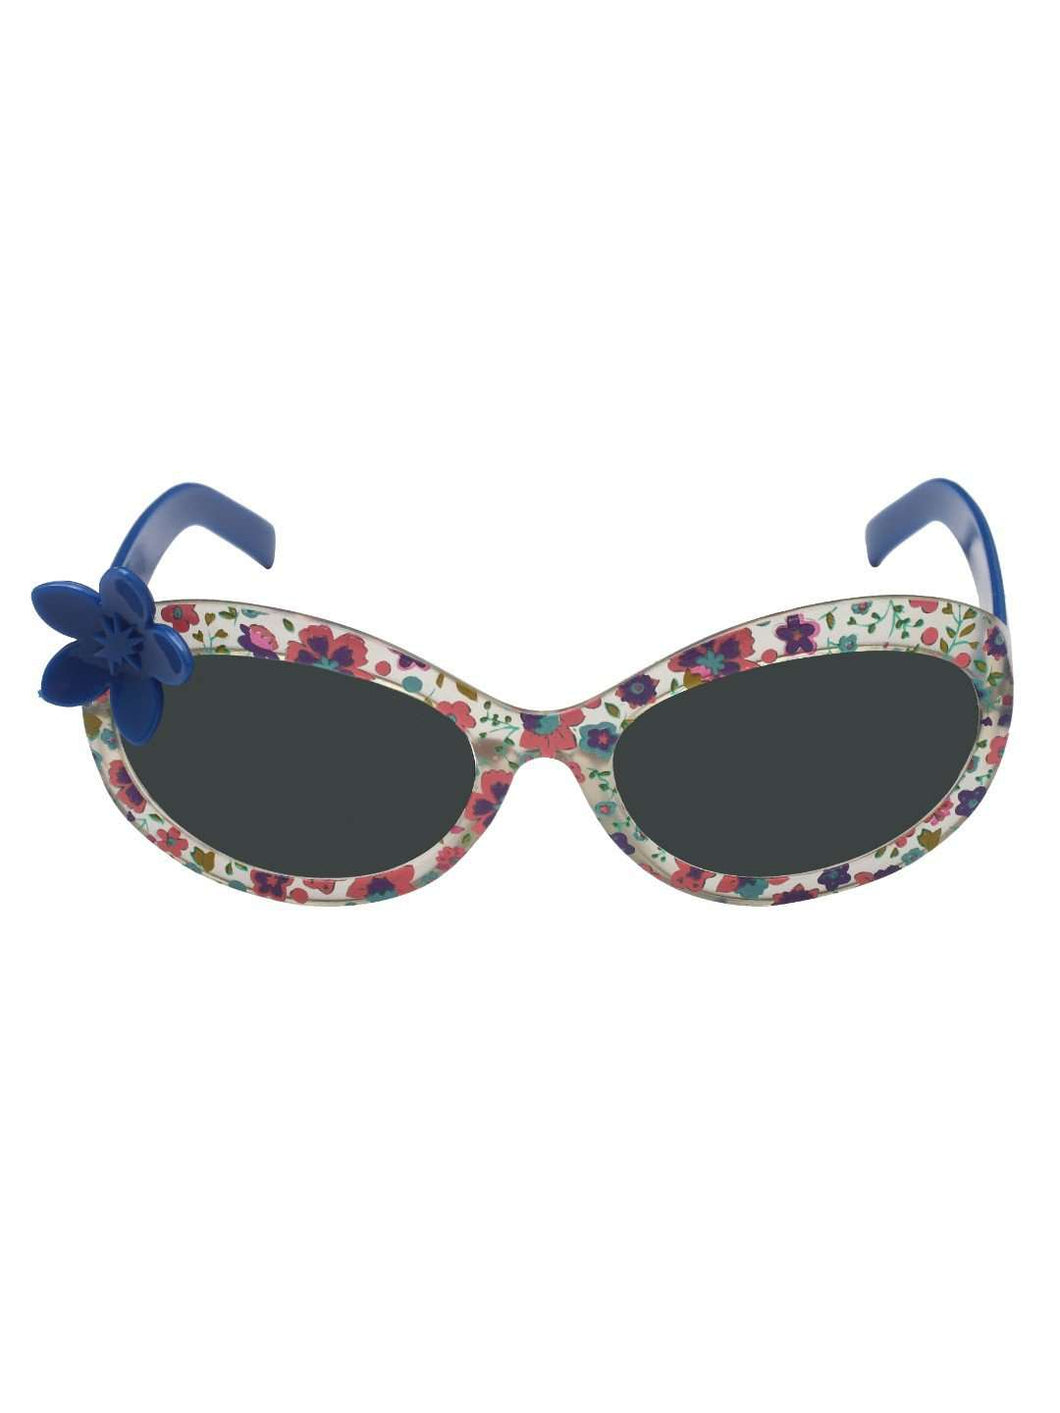 Stol'n Kids Blue Printed Flower Applique Oval Sunglasses - SWHF